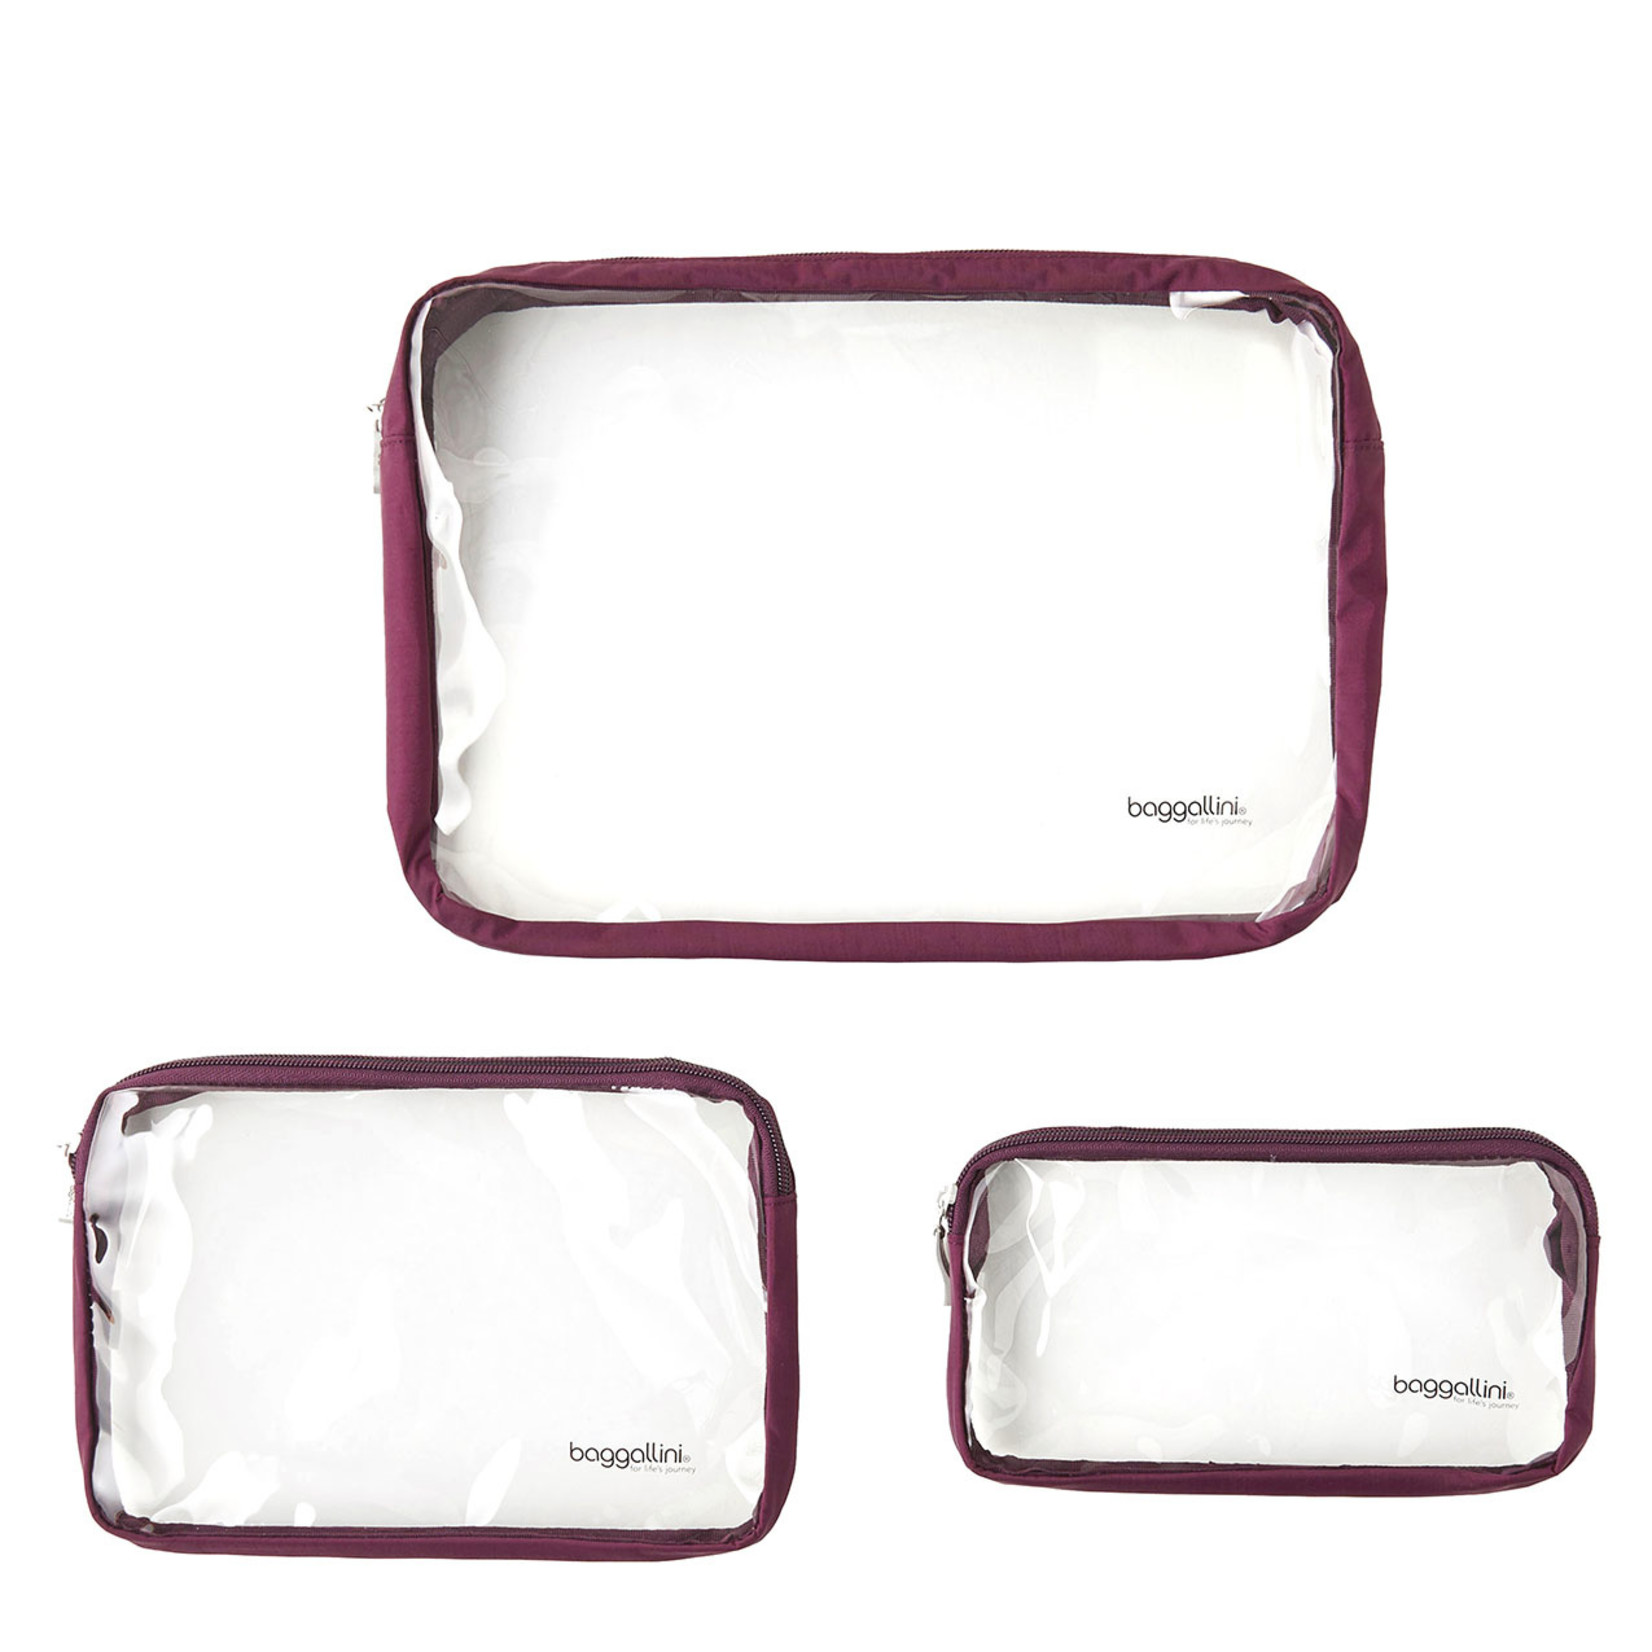 Baggallini Clear Travel Pouches